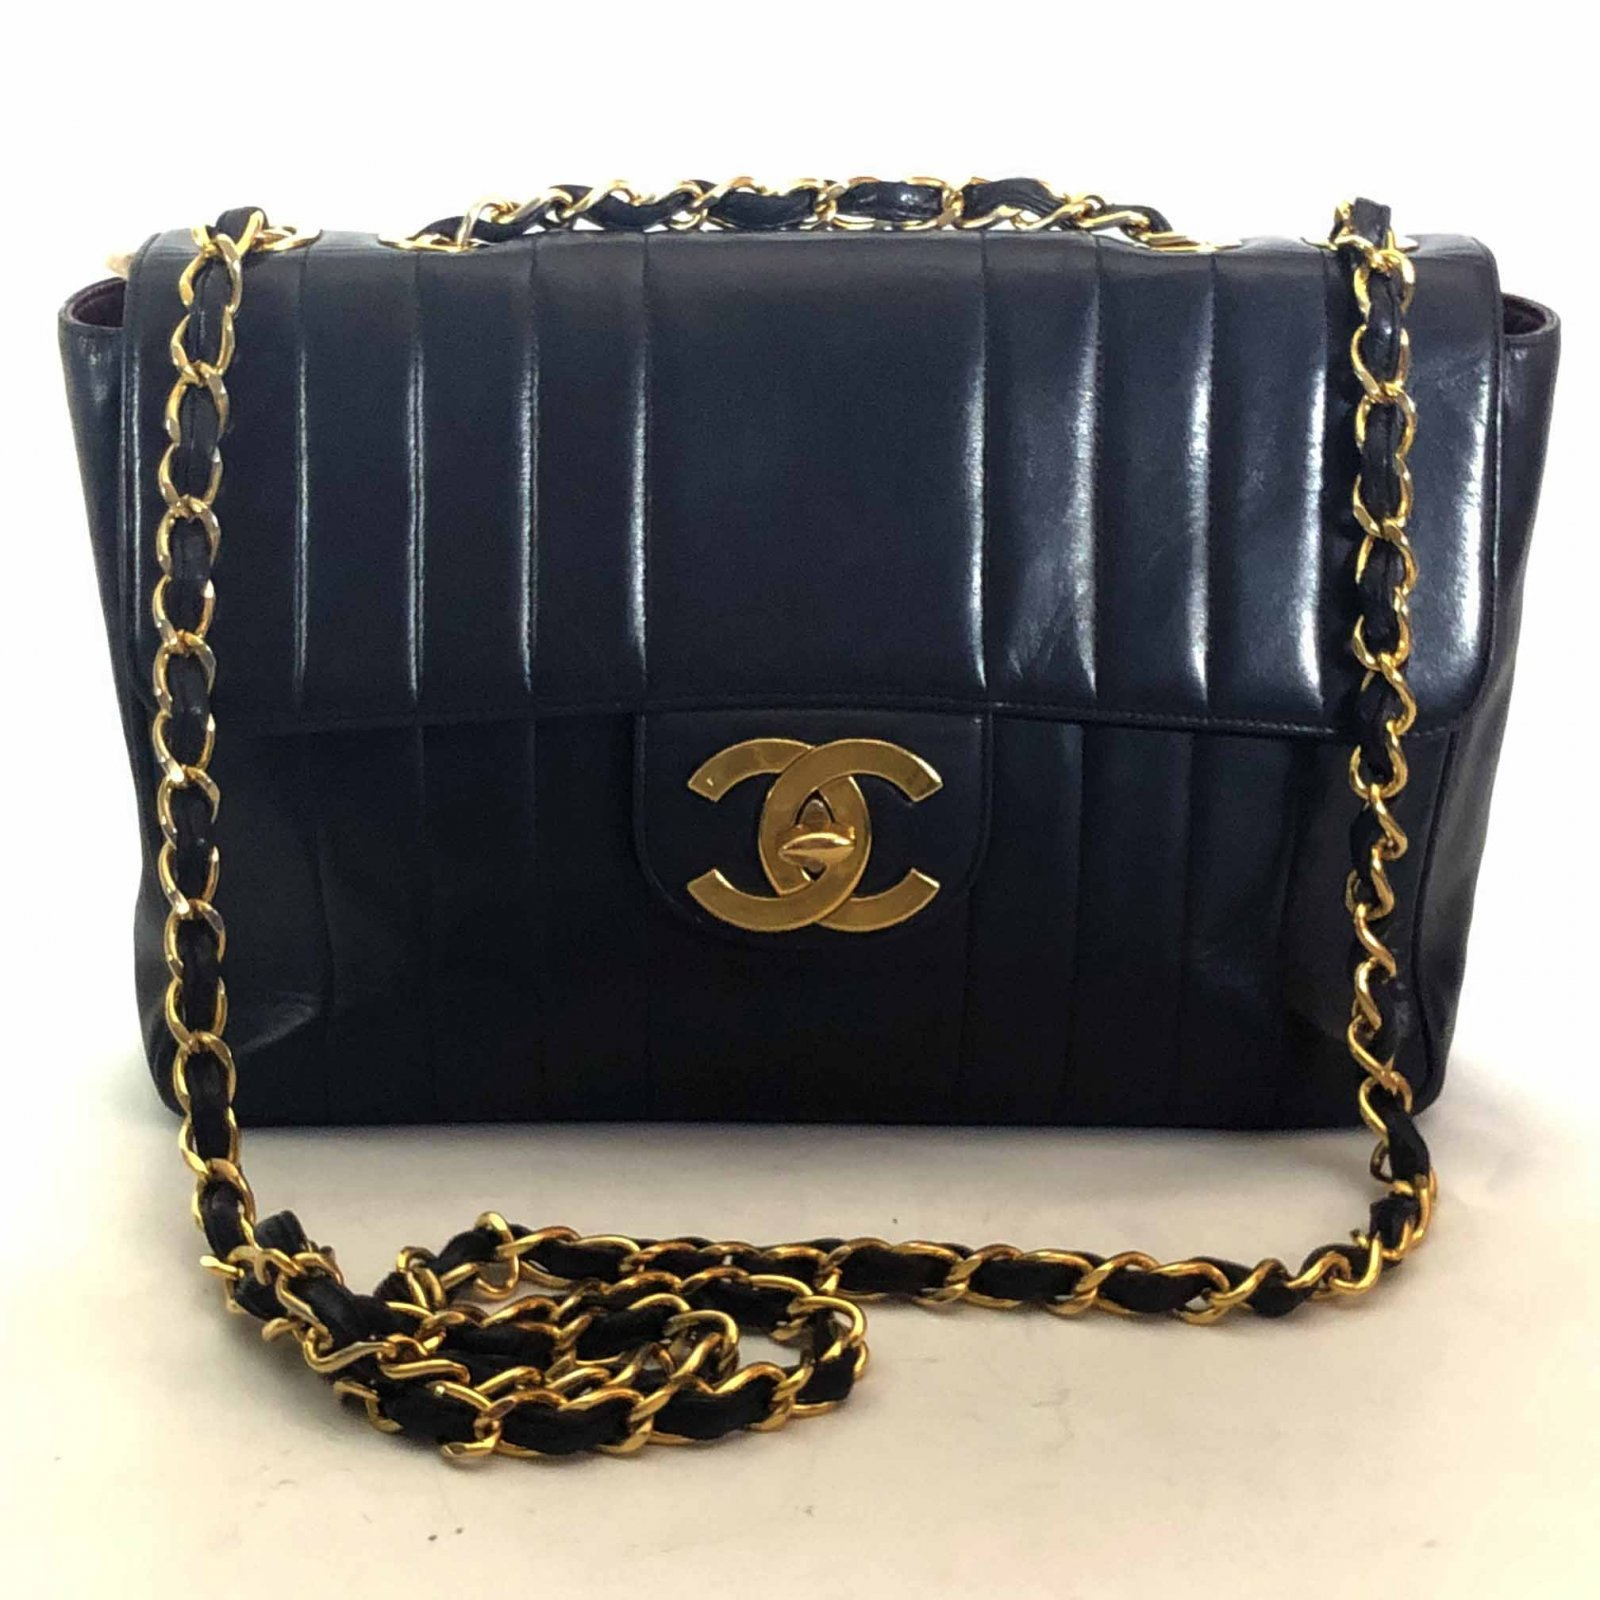 248045e191c76b Details about Authentic Chanel Black Veritcal Quilted Lambskin Leather  Jumbo Flap Bag